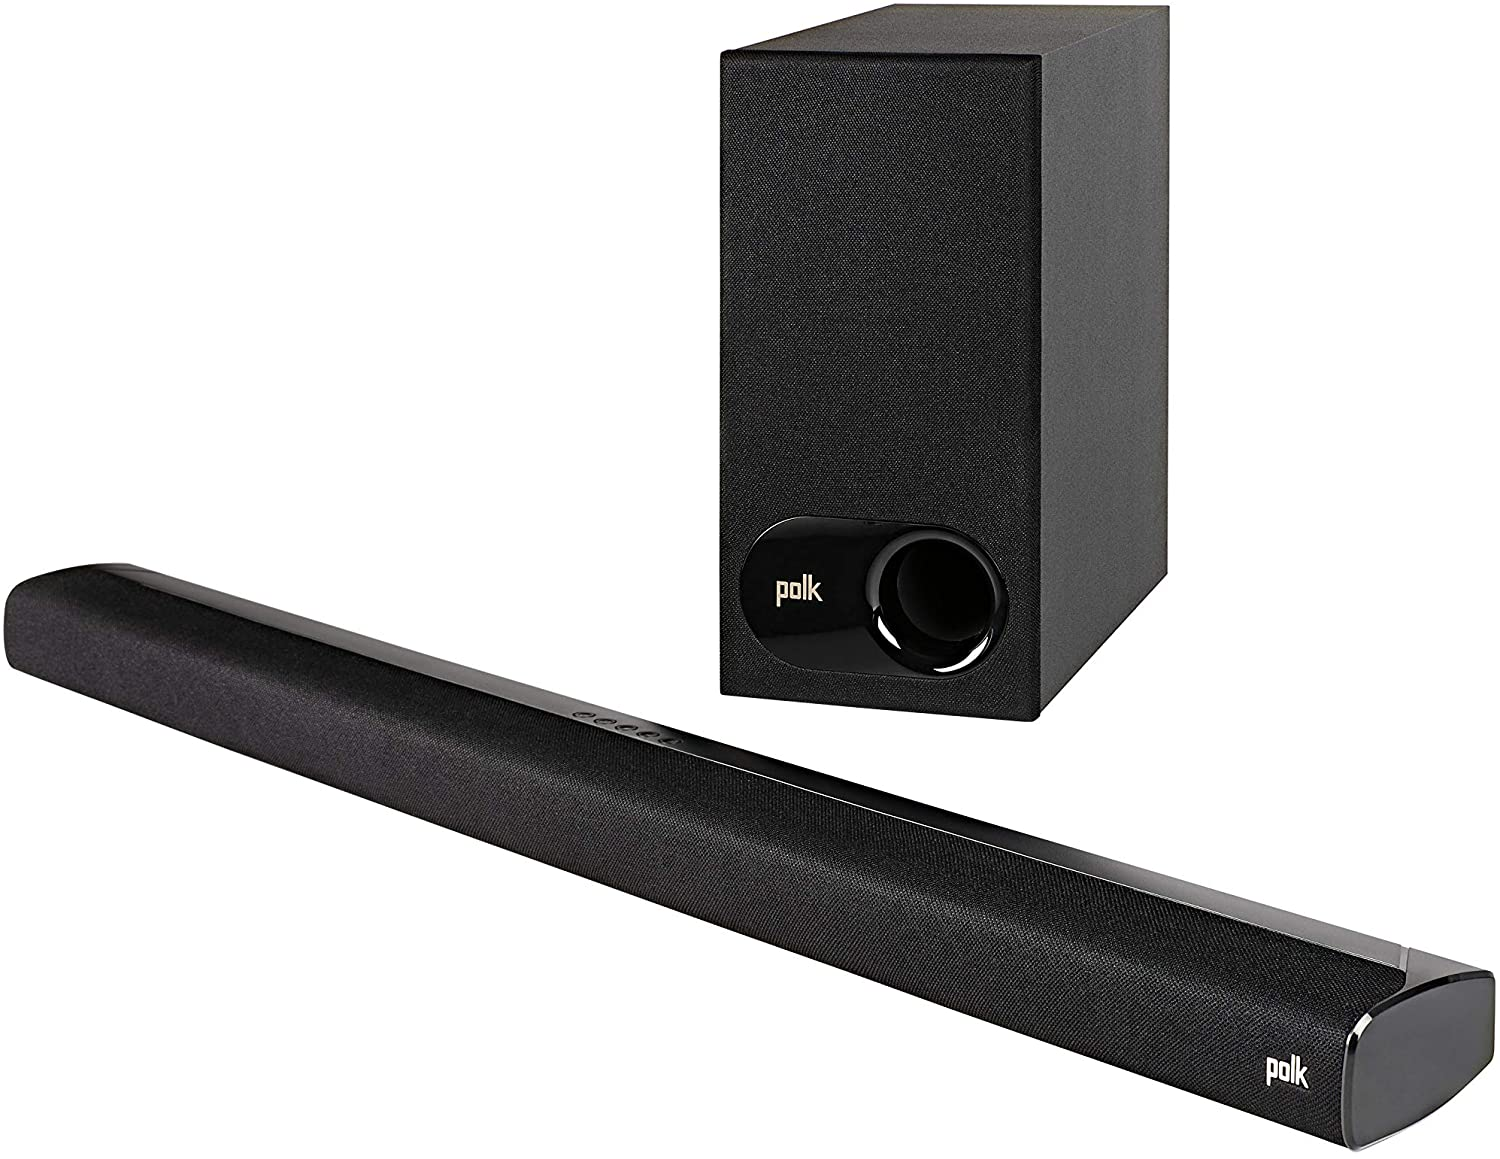 Polk Audio Signa S2 Ultra-Slim TV Sound Bar | Works with 4K & HD TVs | Wireless Subwoofer | Includes HDMI & Optical Cables | Bluetooth Enabled, Black